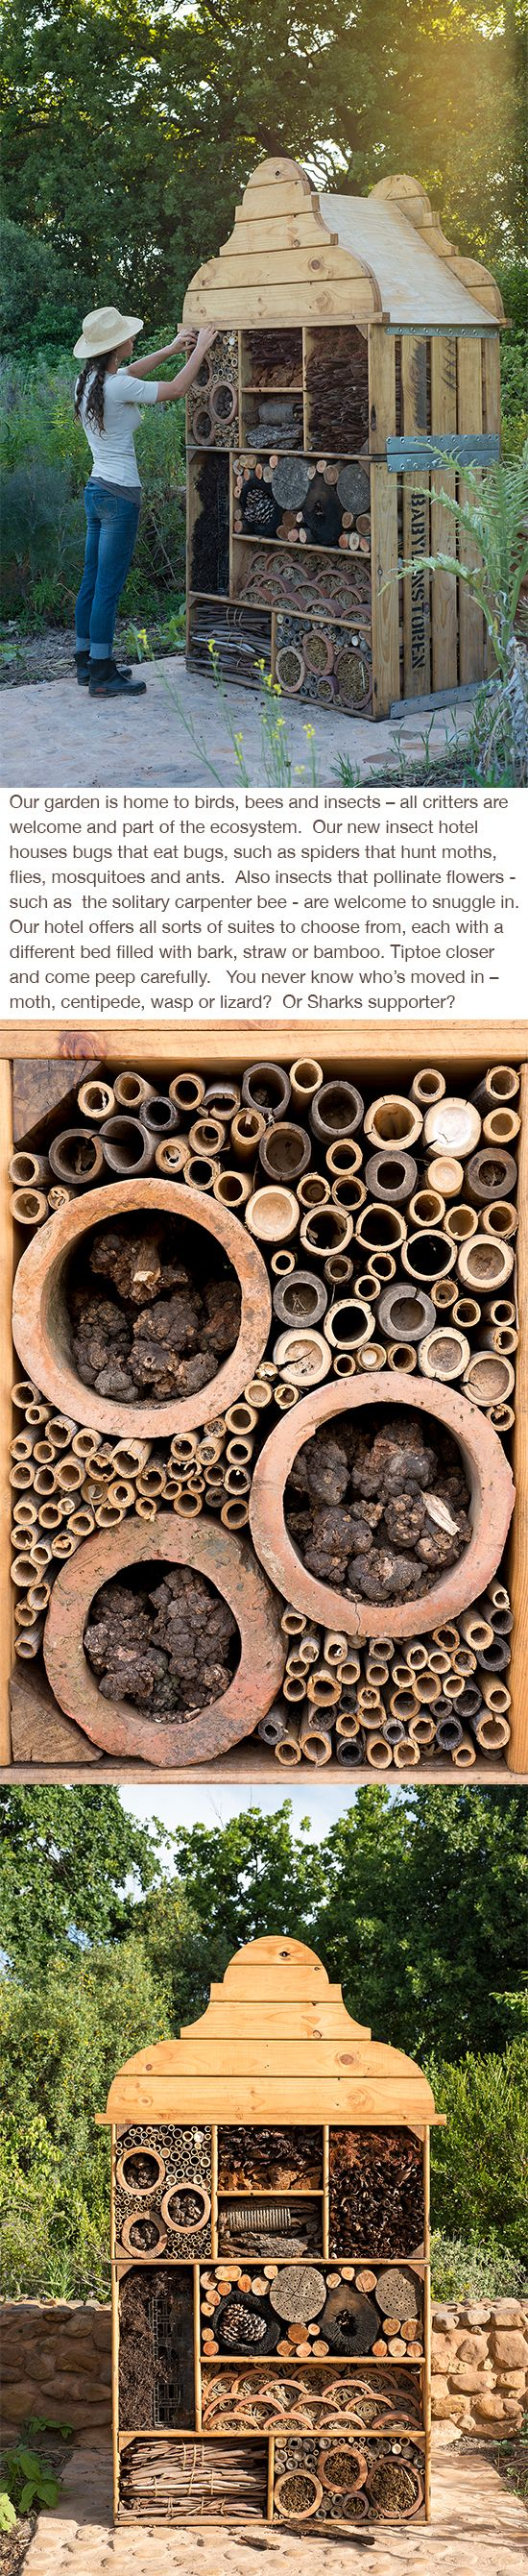 Insect hotel @ Babylonstoren, I want to see the garden that these bees pollinate!